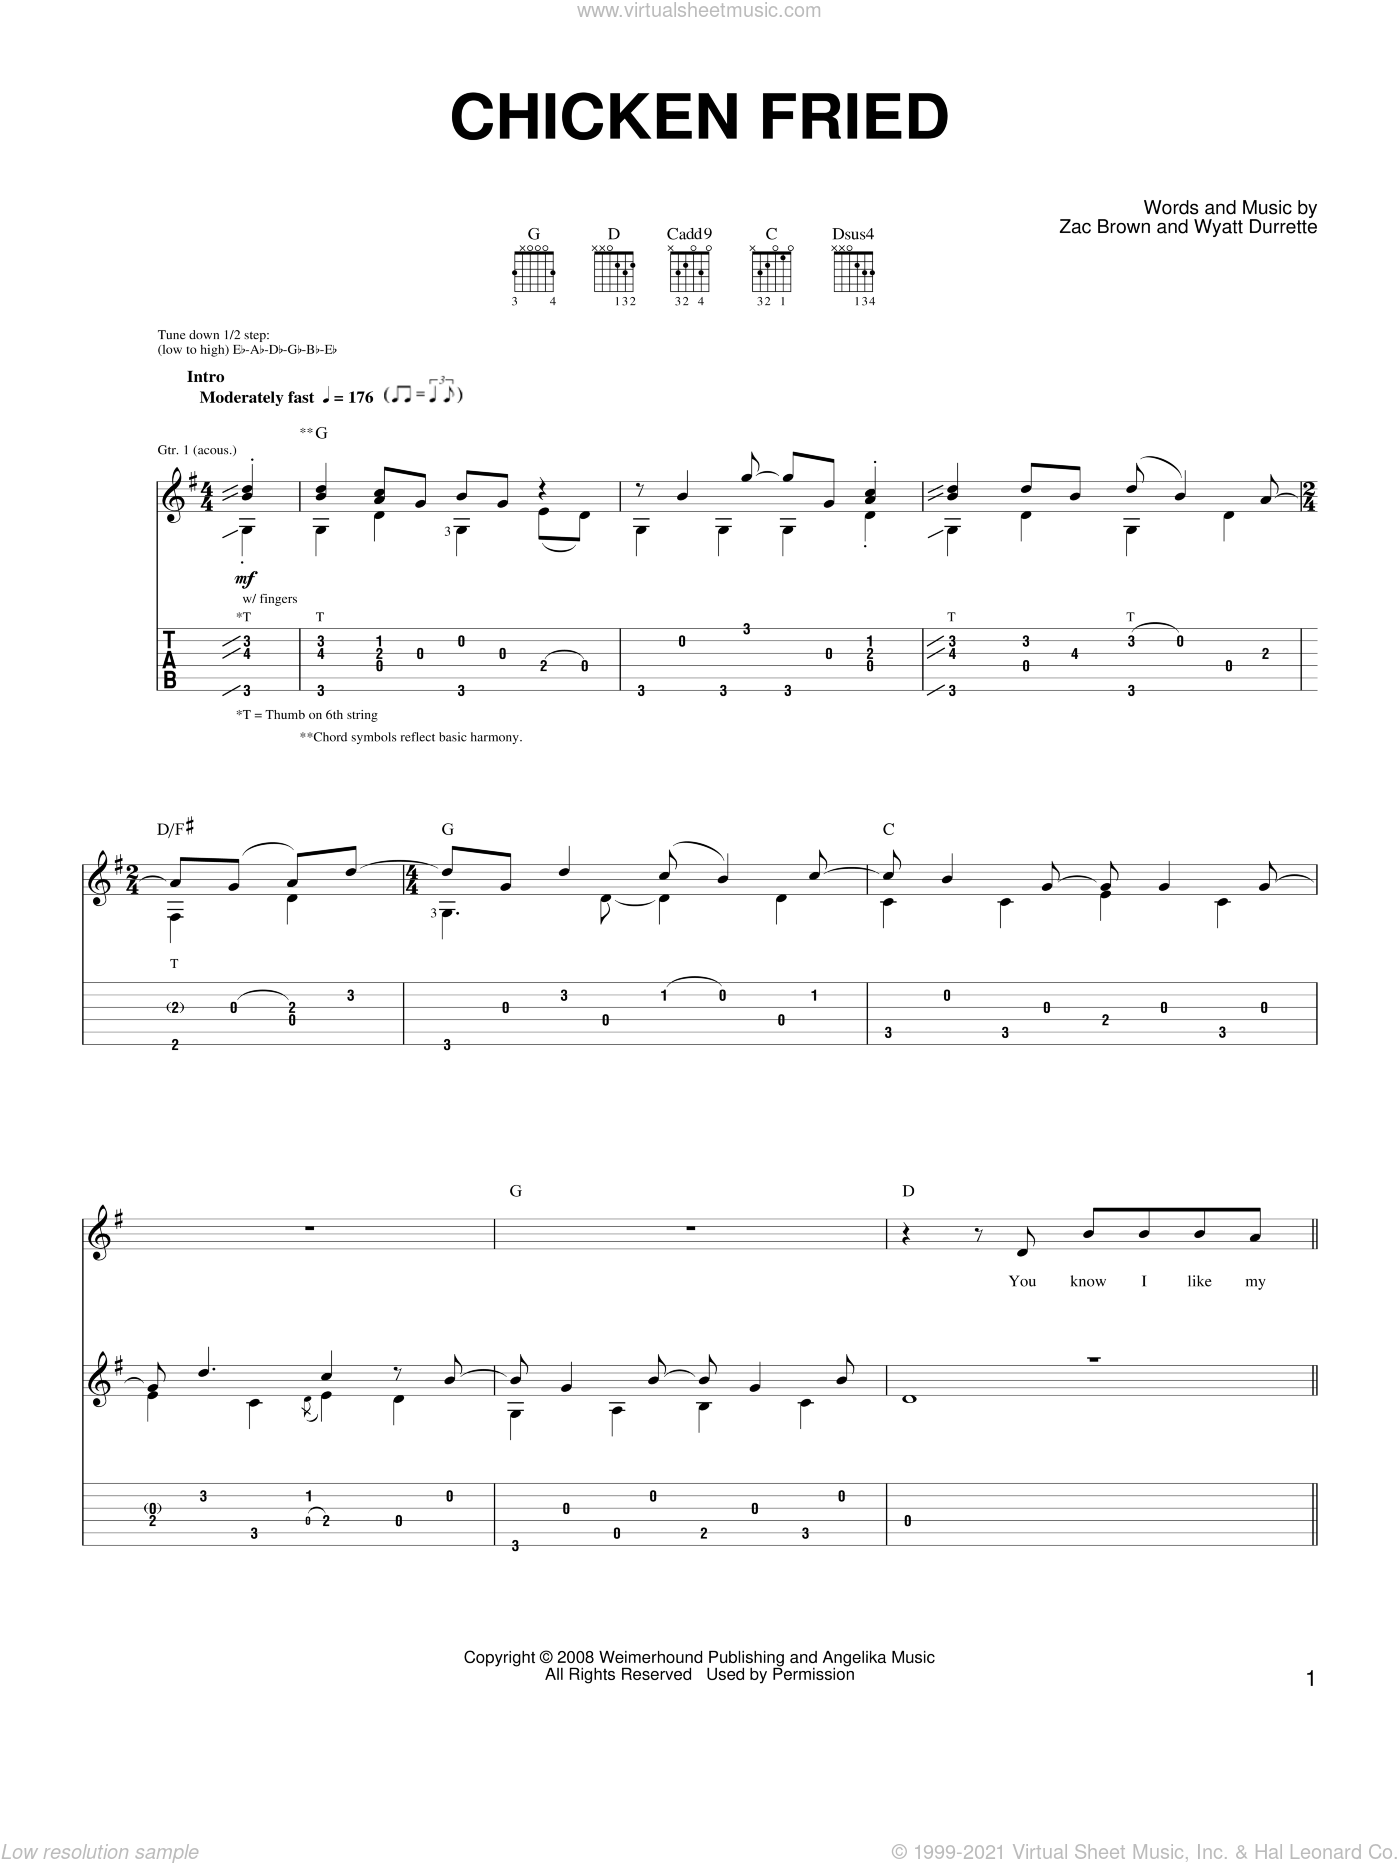 Chicken Fried sheet music for guitar solo (chords) by Zac Brown Band. Score Image Preview.